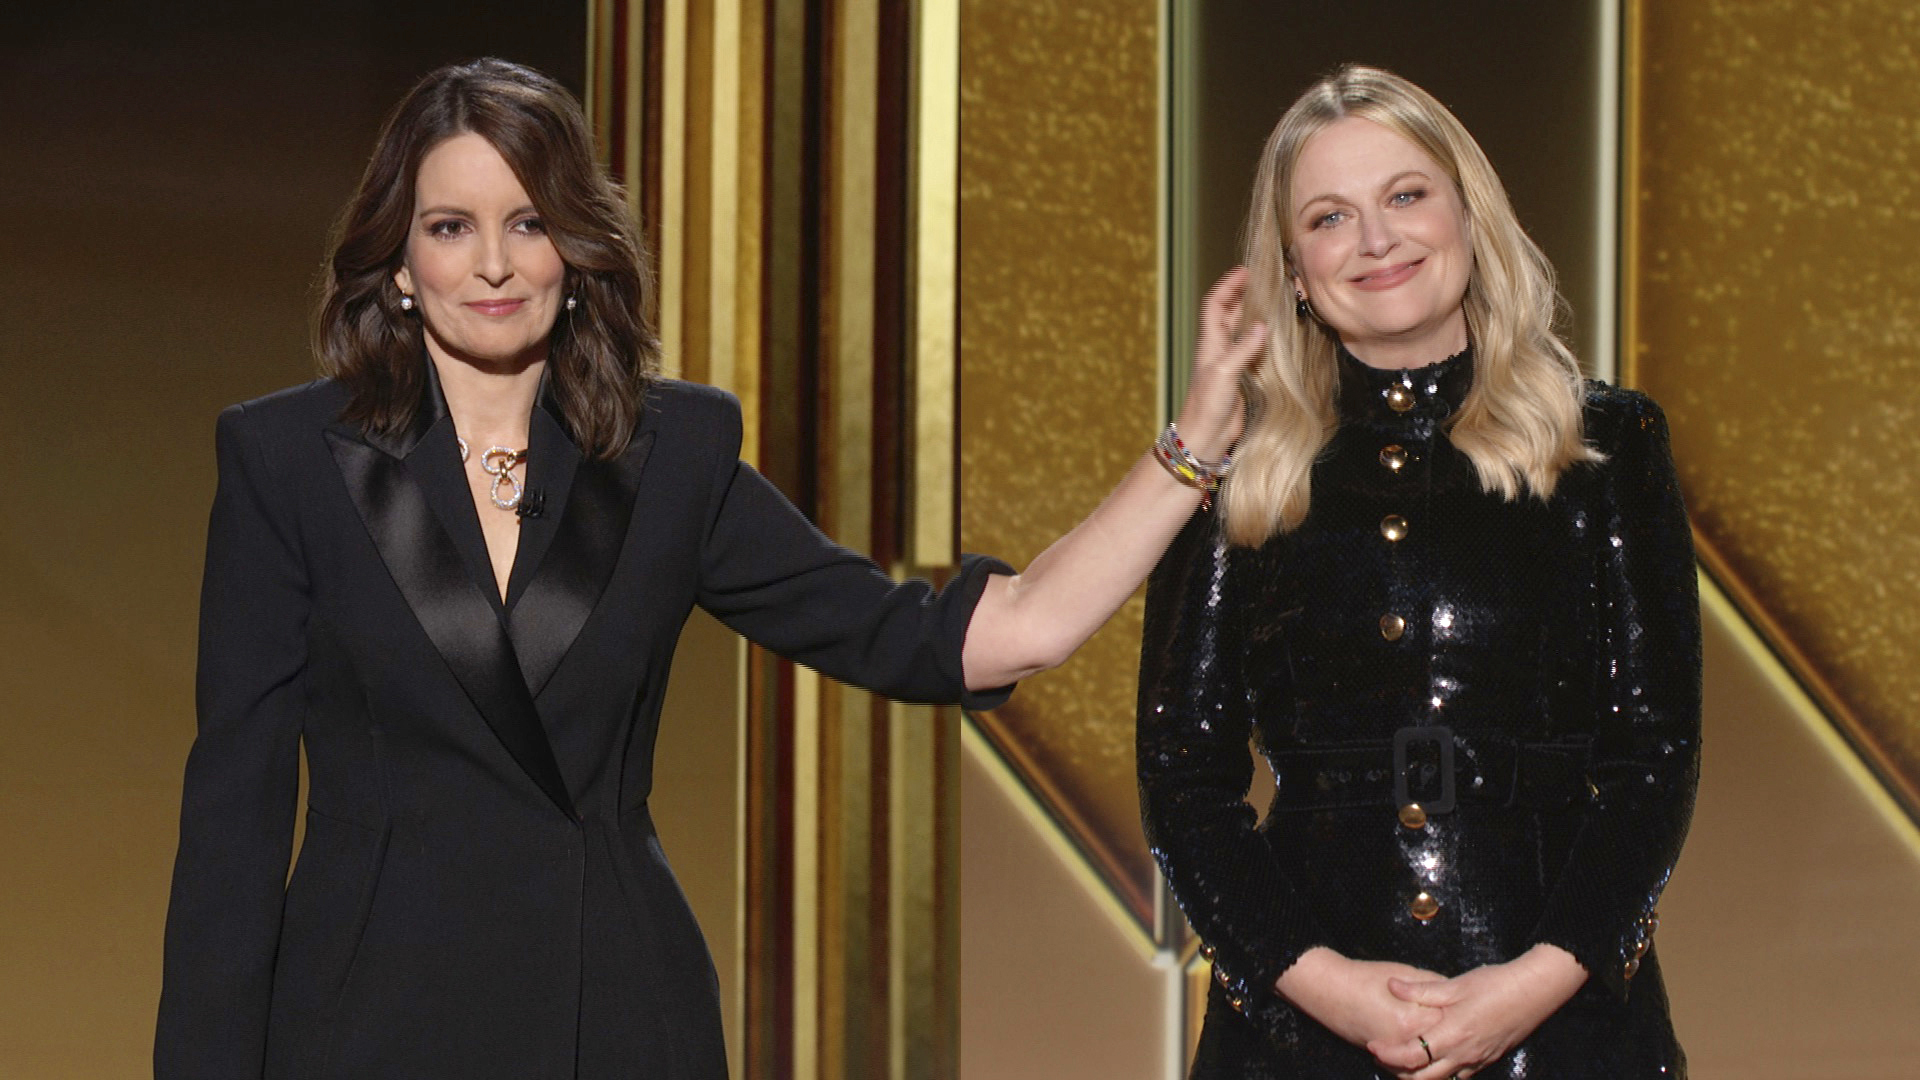 Golden Globe Awards - Season 78